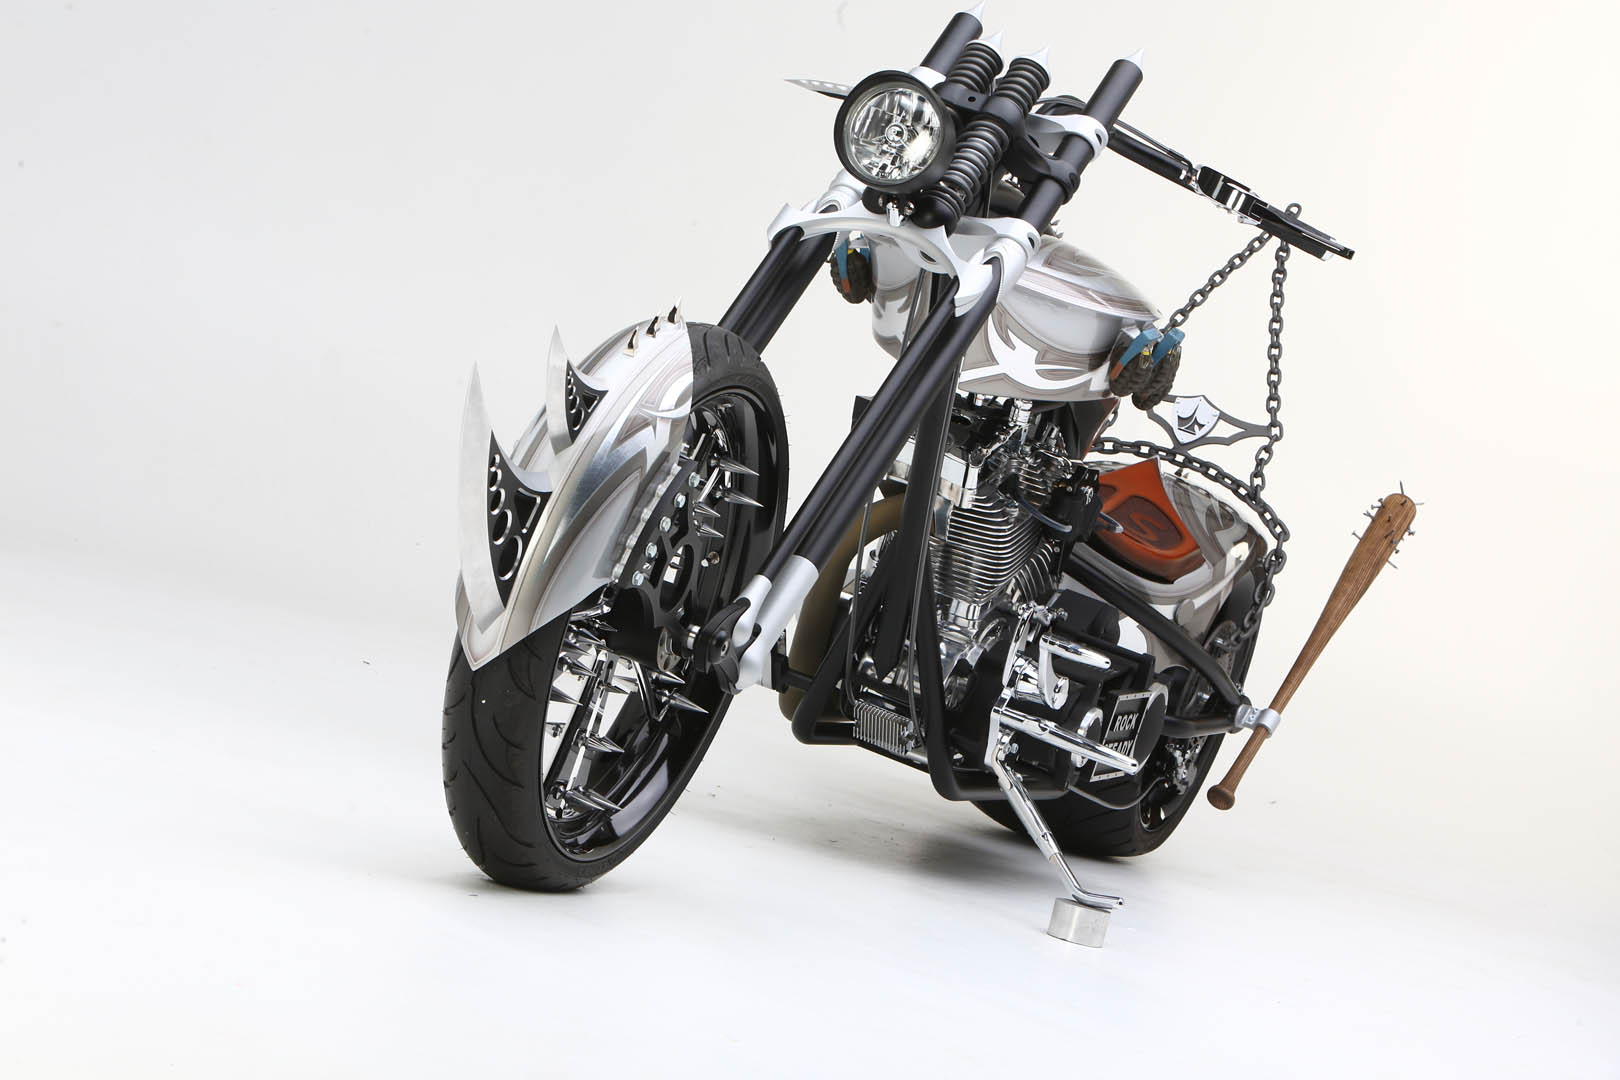 paul-jr-designs-rock-steady-bike-103